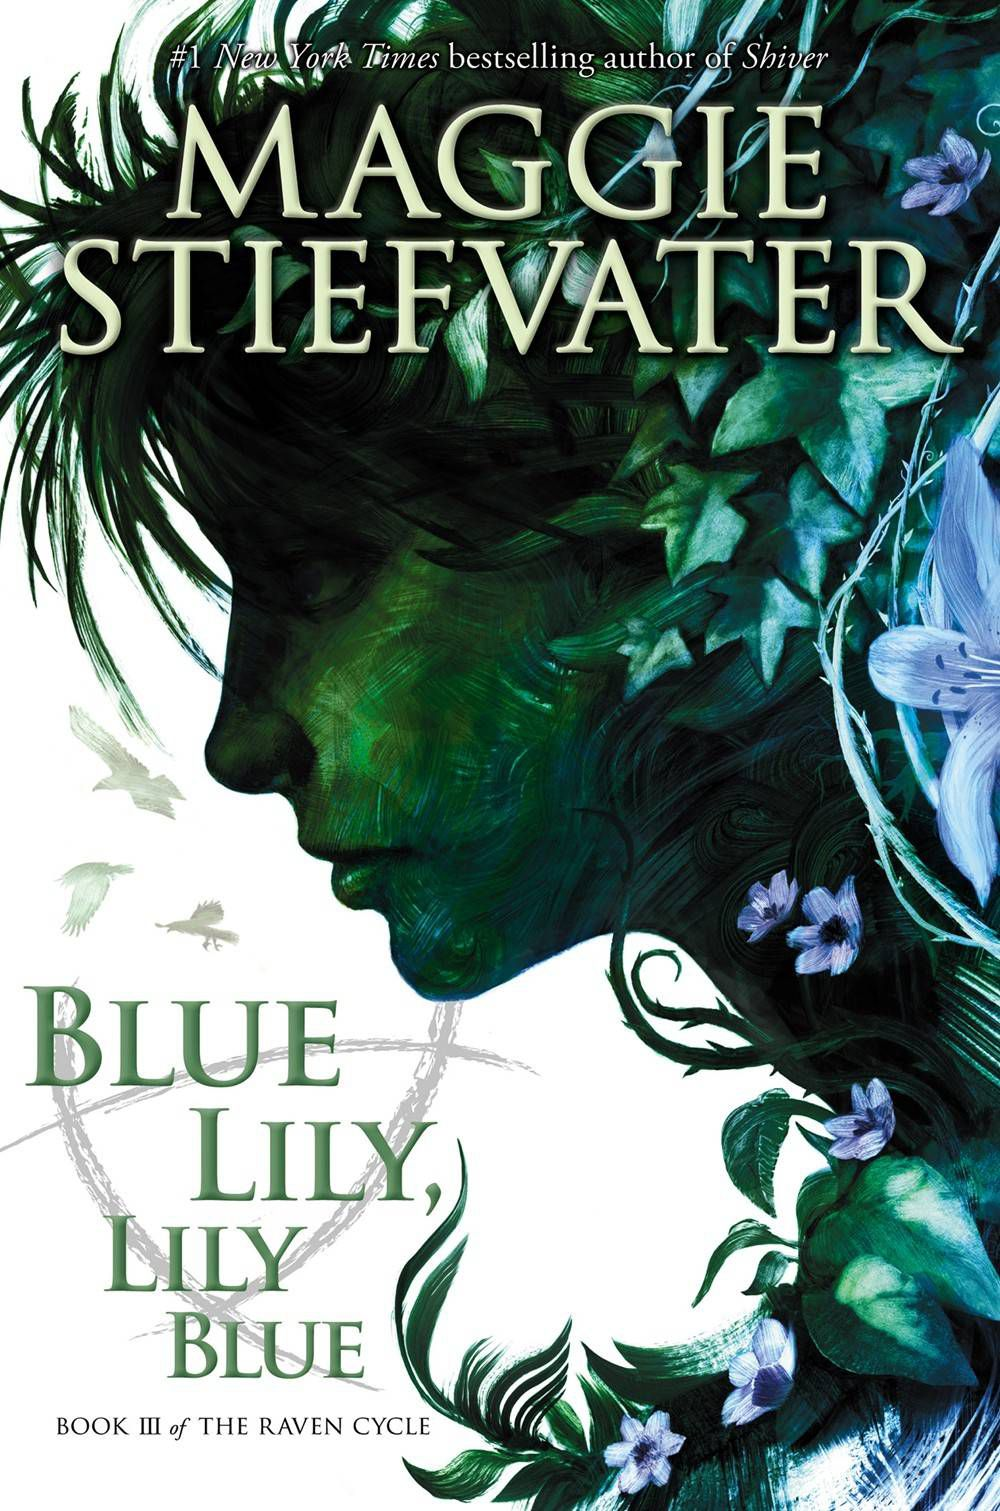 blue lily lily blue - maggie stiefvater